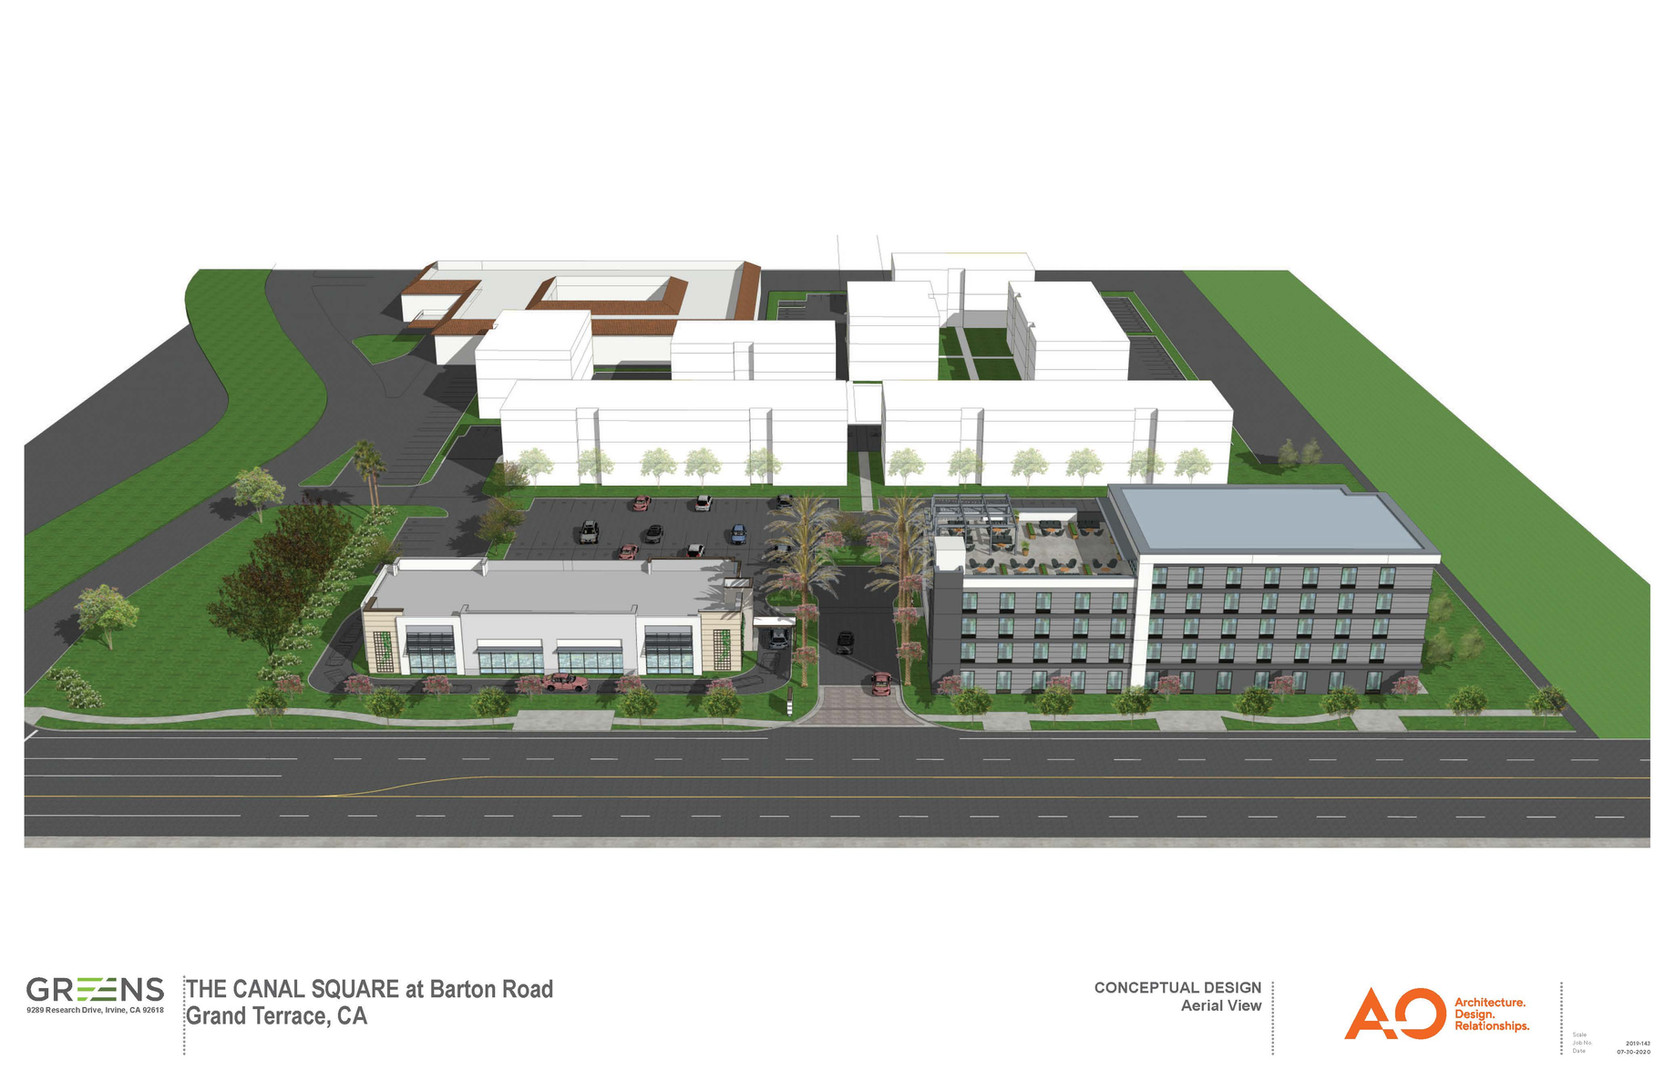 2020-07-30 Conceptual Design Package_Pag